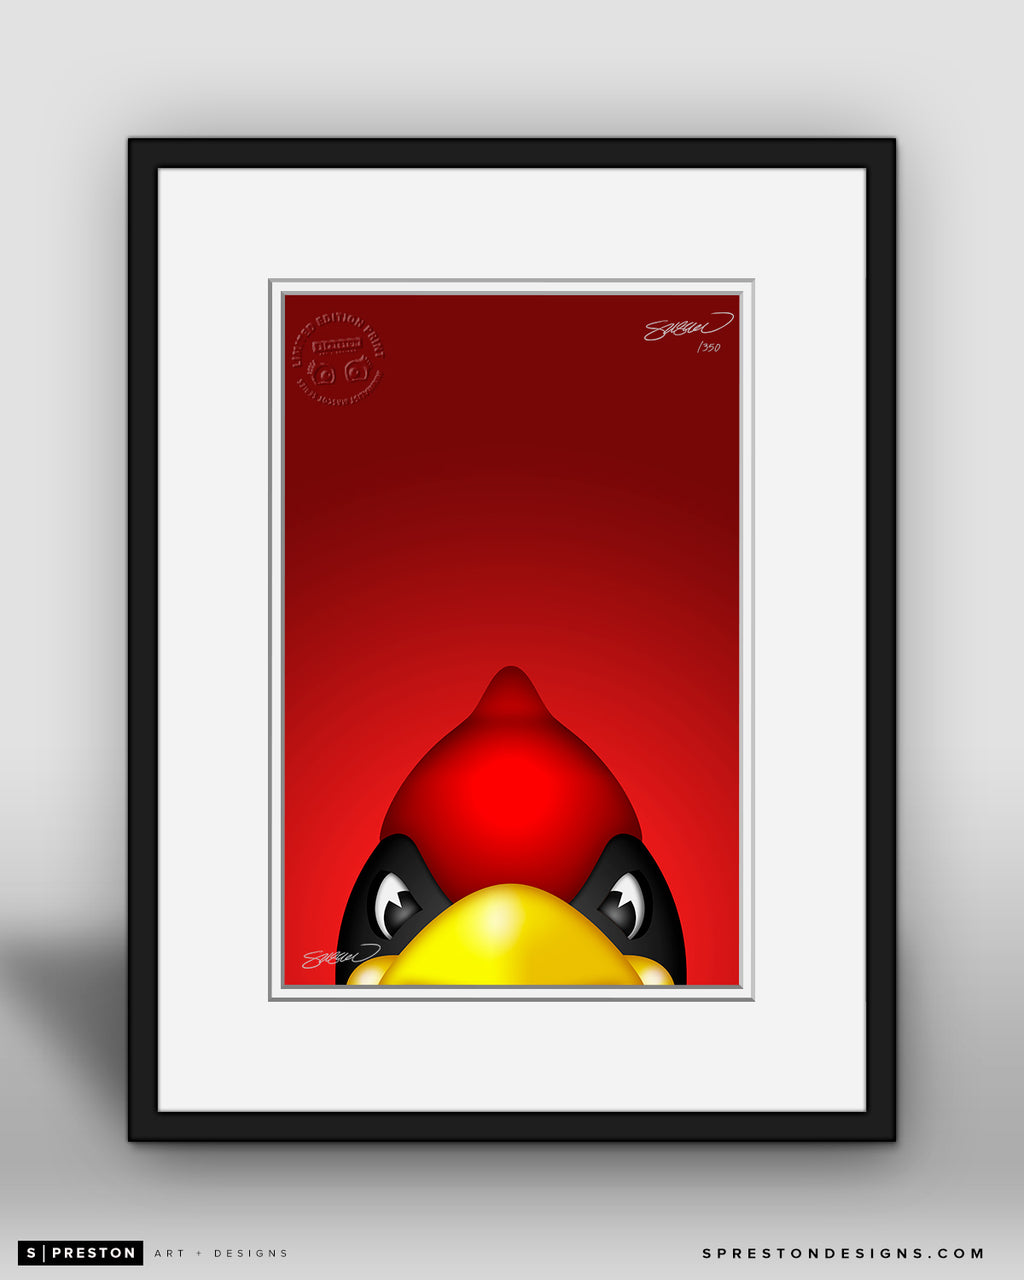 Minimalist Big Red - Arizona Cardinals - S. Preston